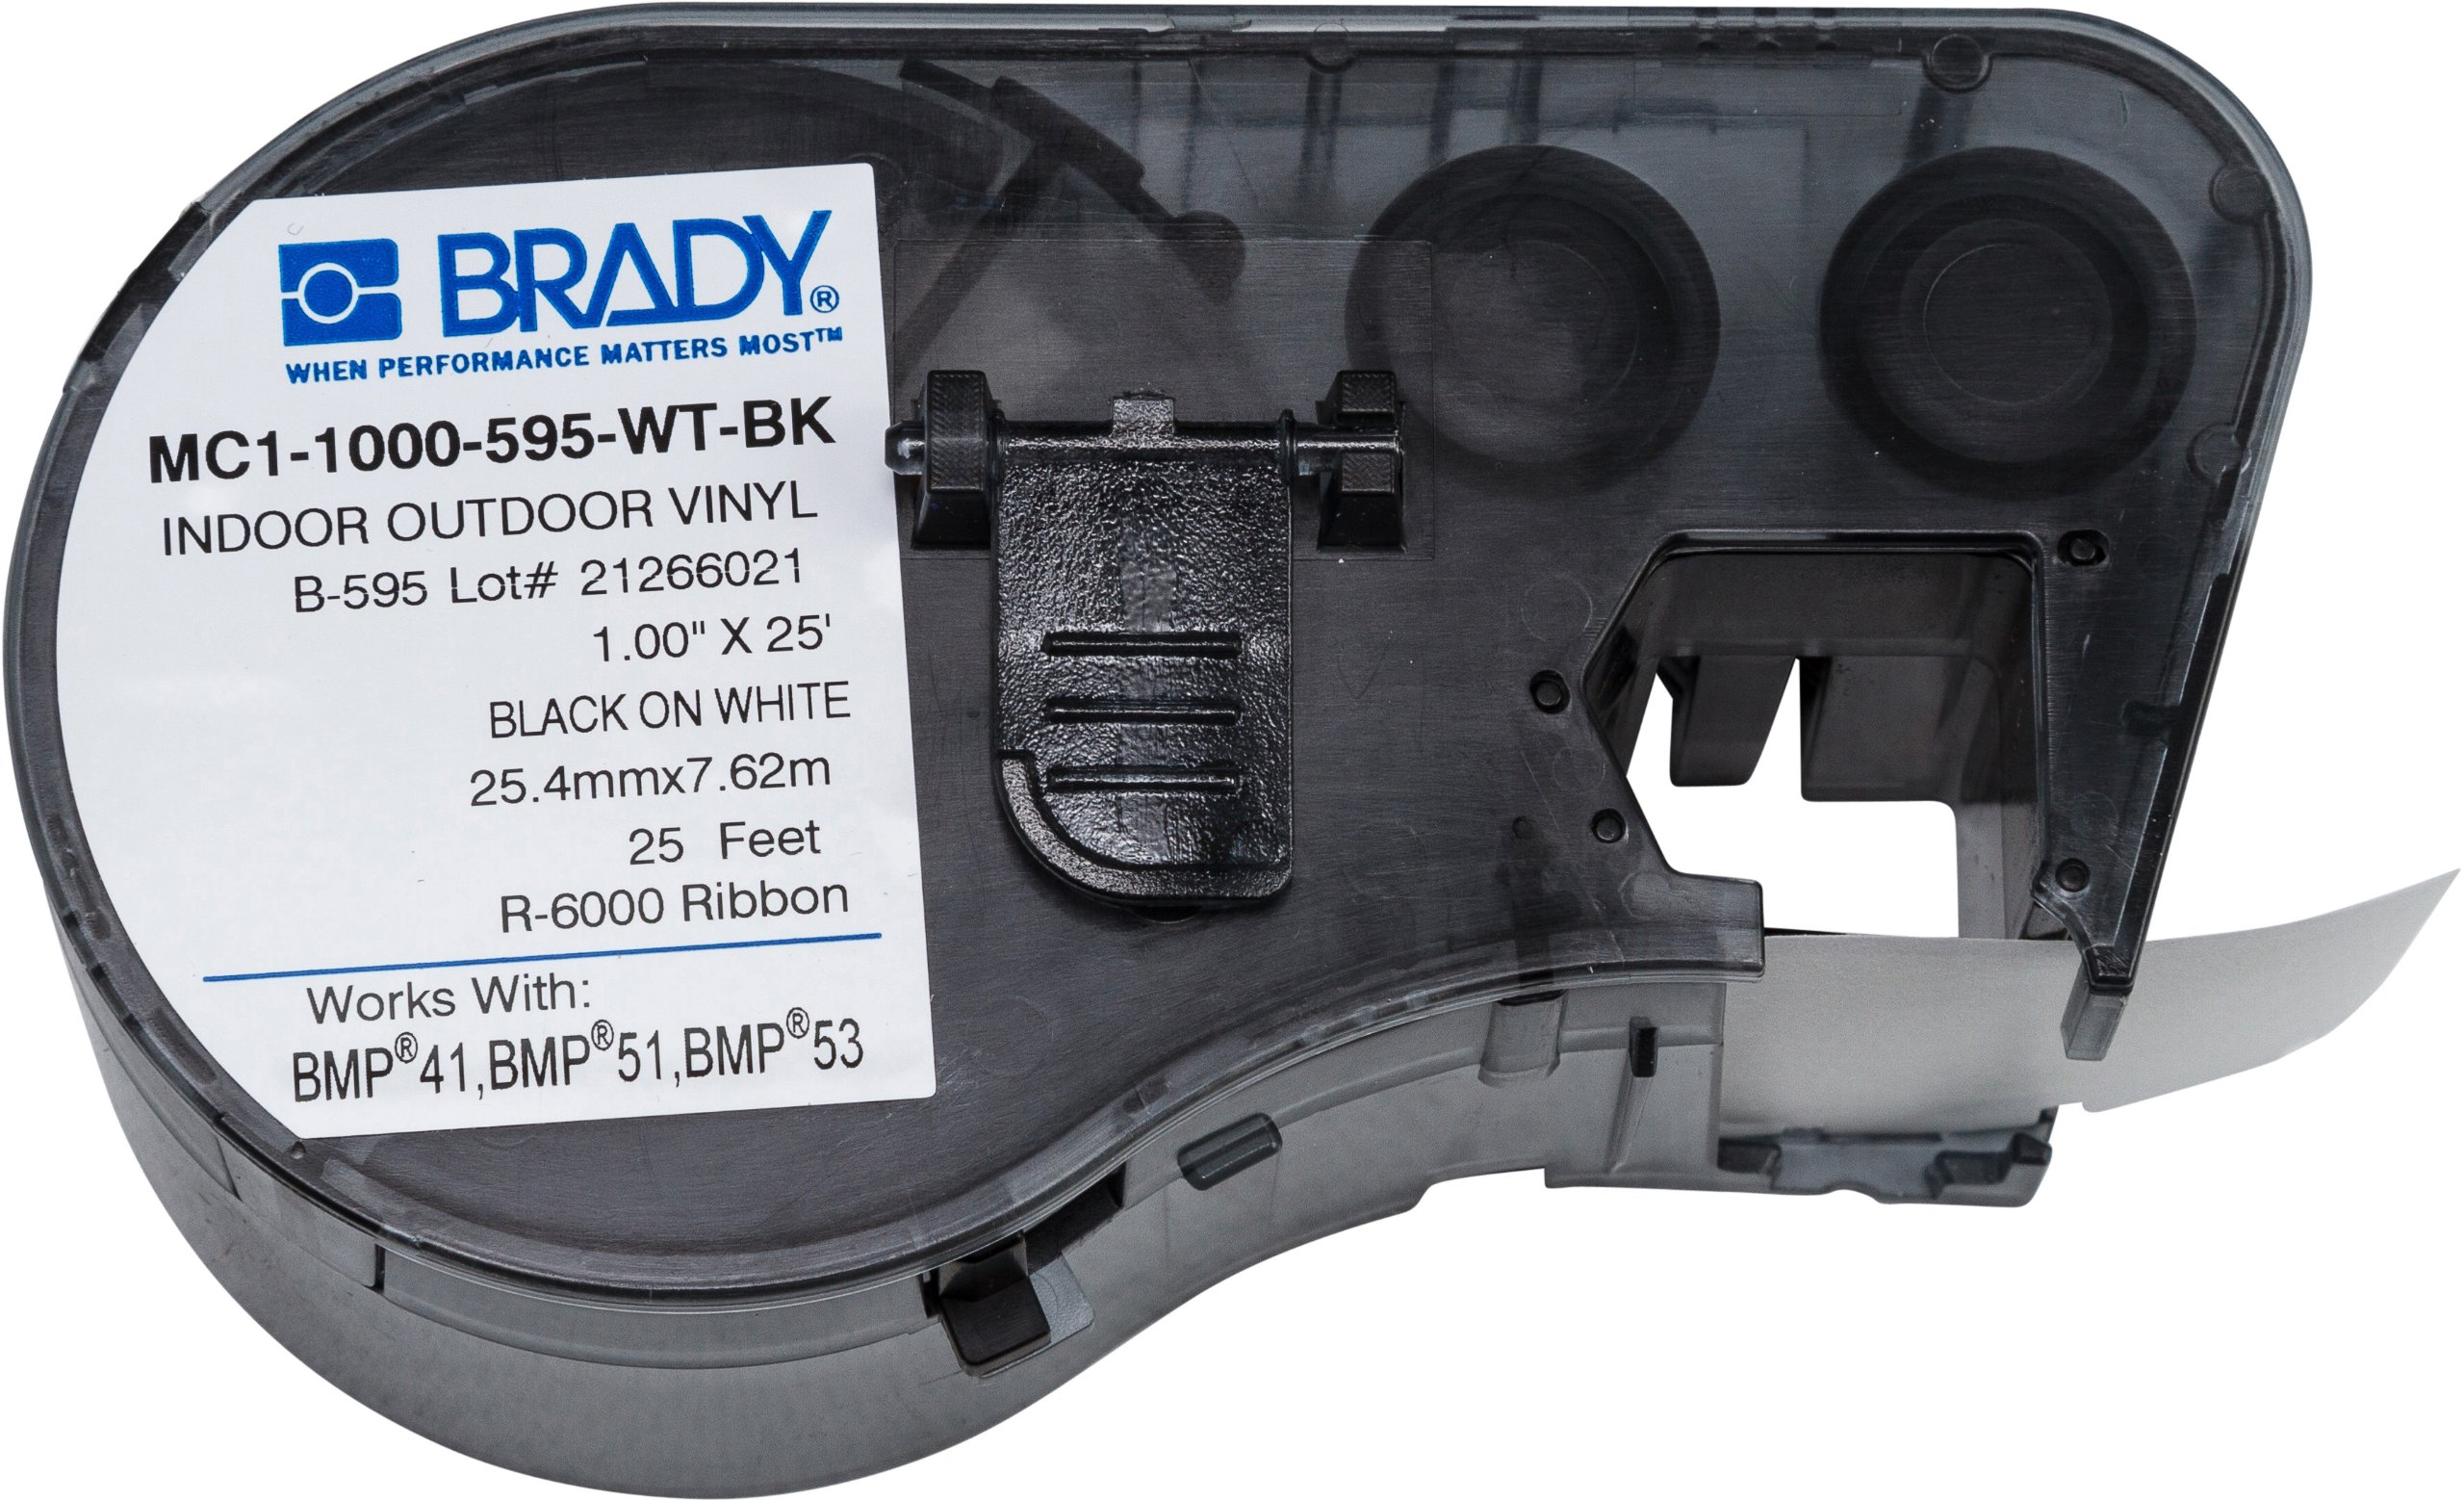 Brady High Adhesion Vinyl Label Tape (MC1-1000-595-WT-BK) - Black on White Vinyl Film - Compatible with BMP41, BMP51, and BMP53L Label Printers - 25' Length, 1'' Width